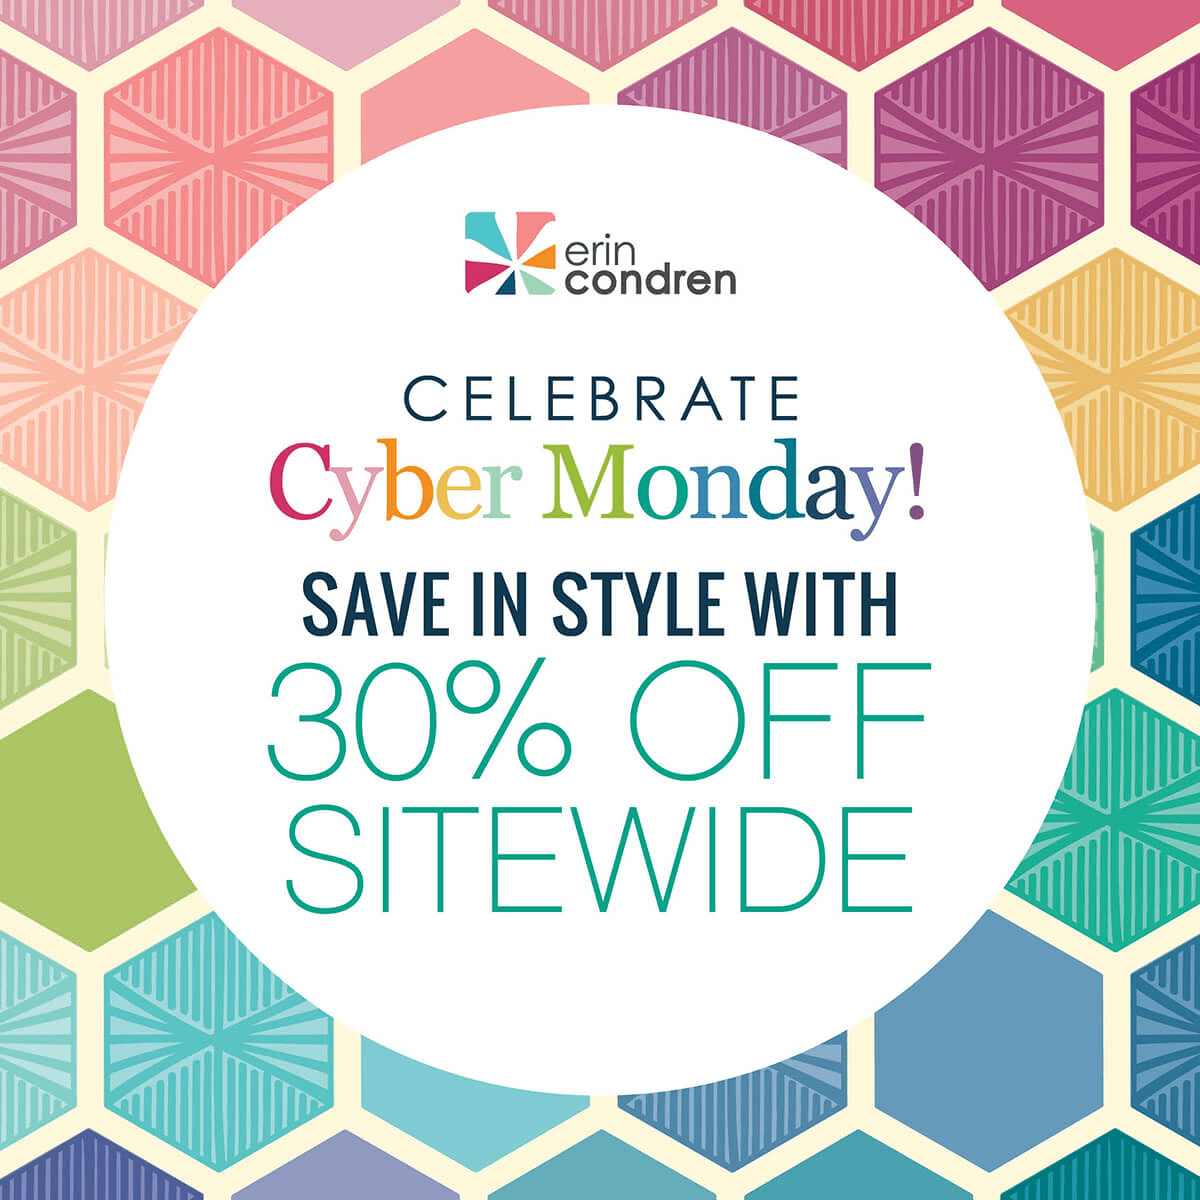 Erin Condren Cyber Monday Deals 2018: Get 30% Off Sitewide!